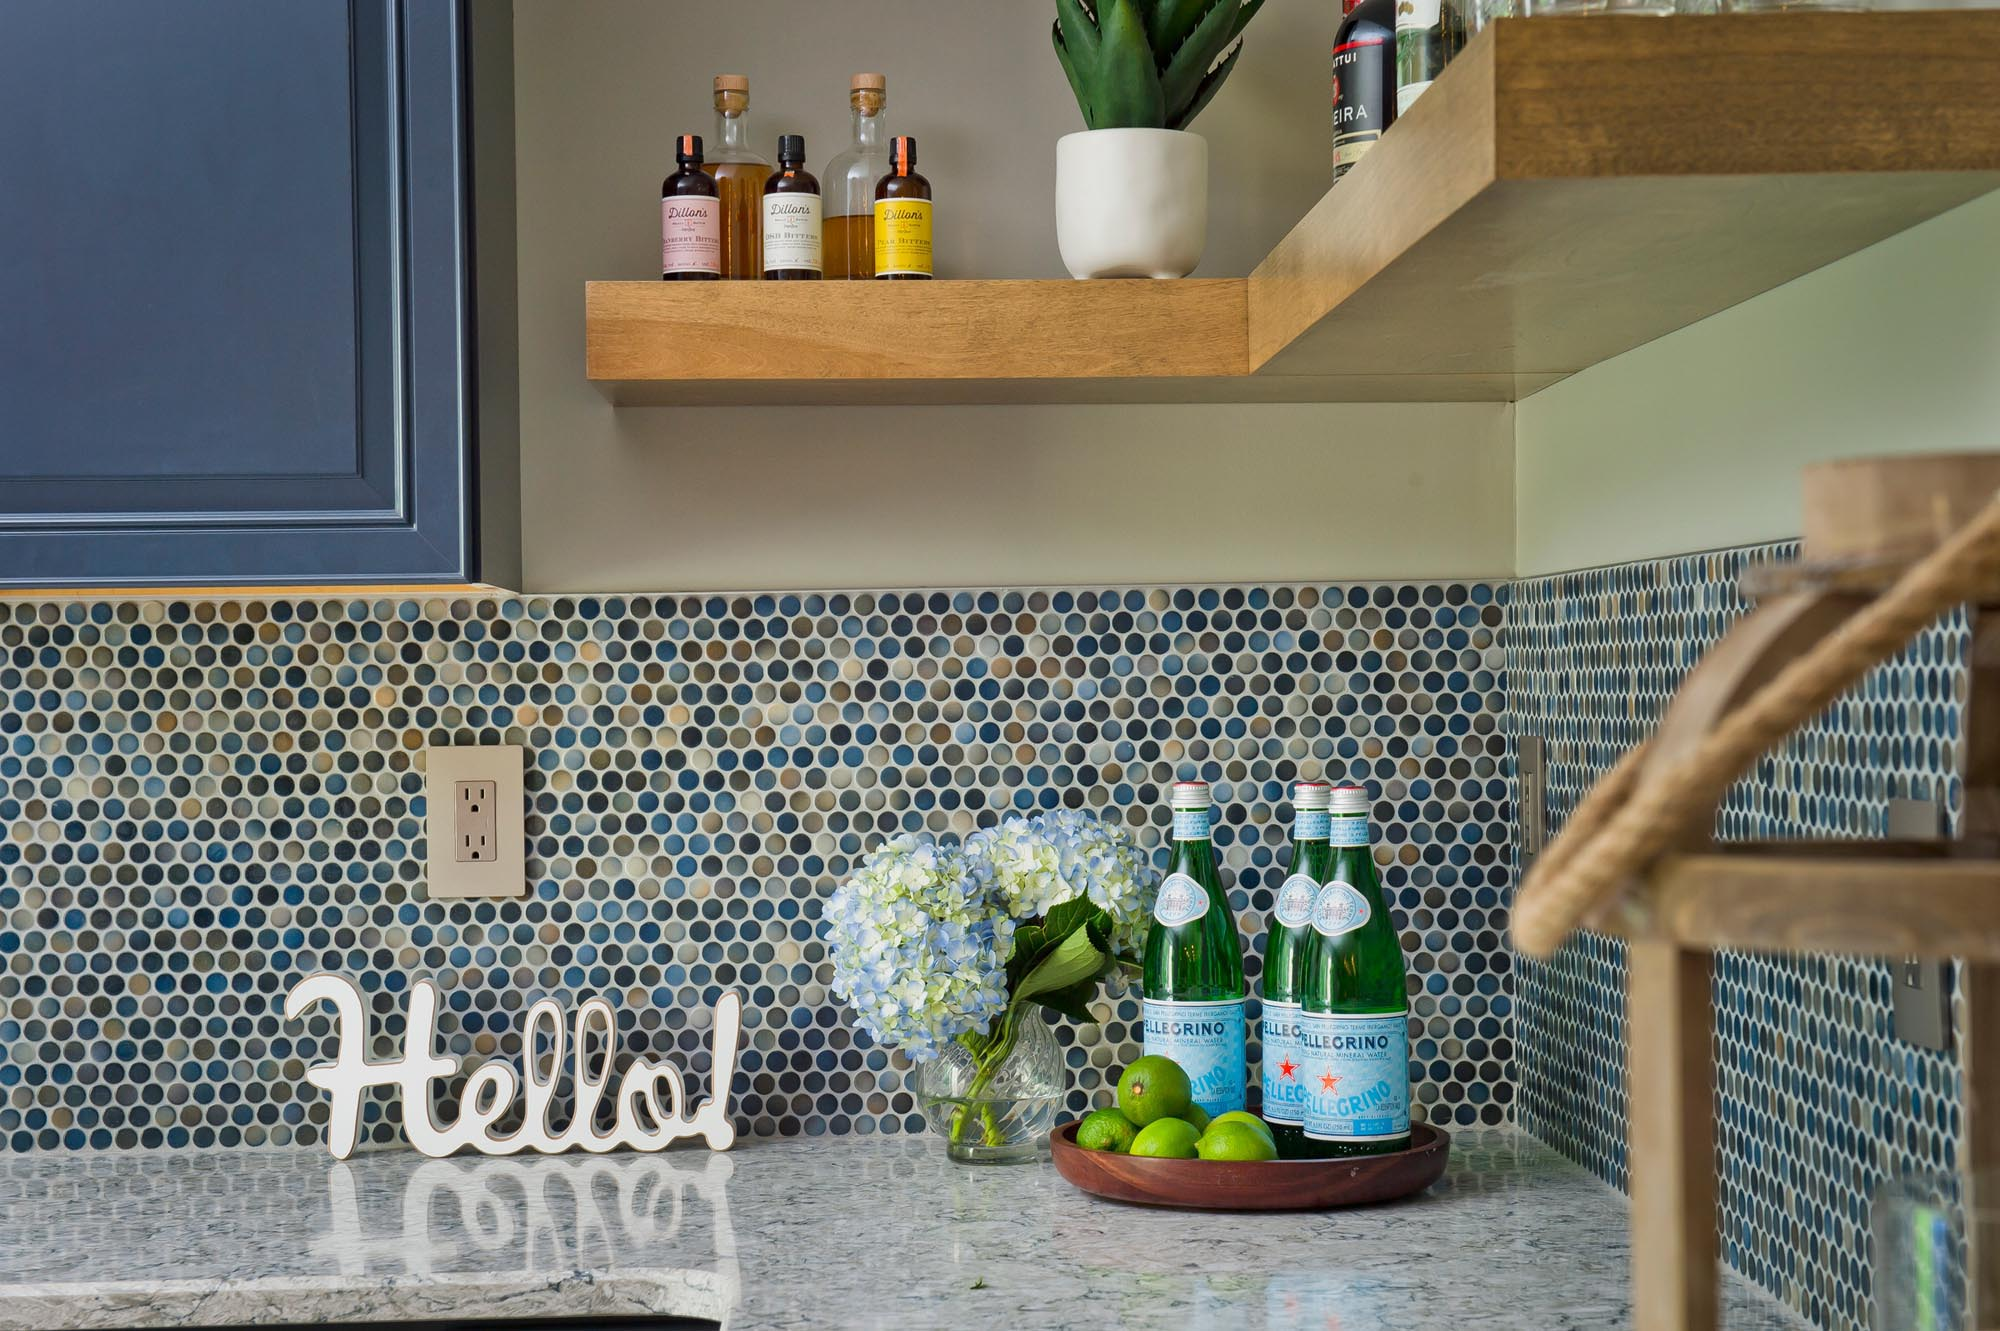 Marble counter top with blue tiled backsplash and mini bar